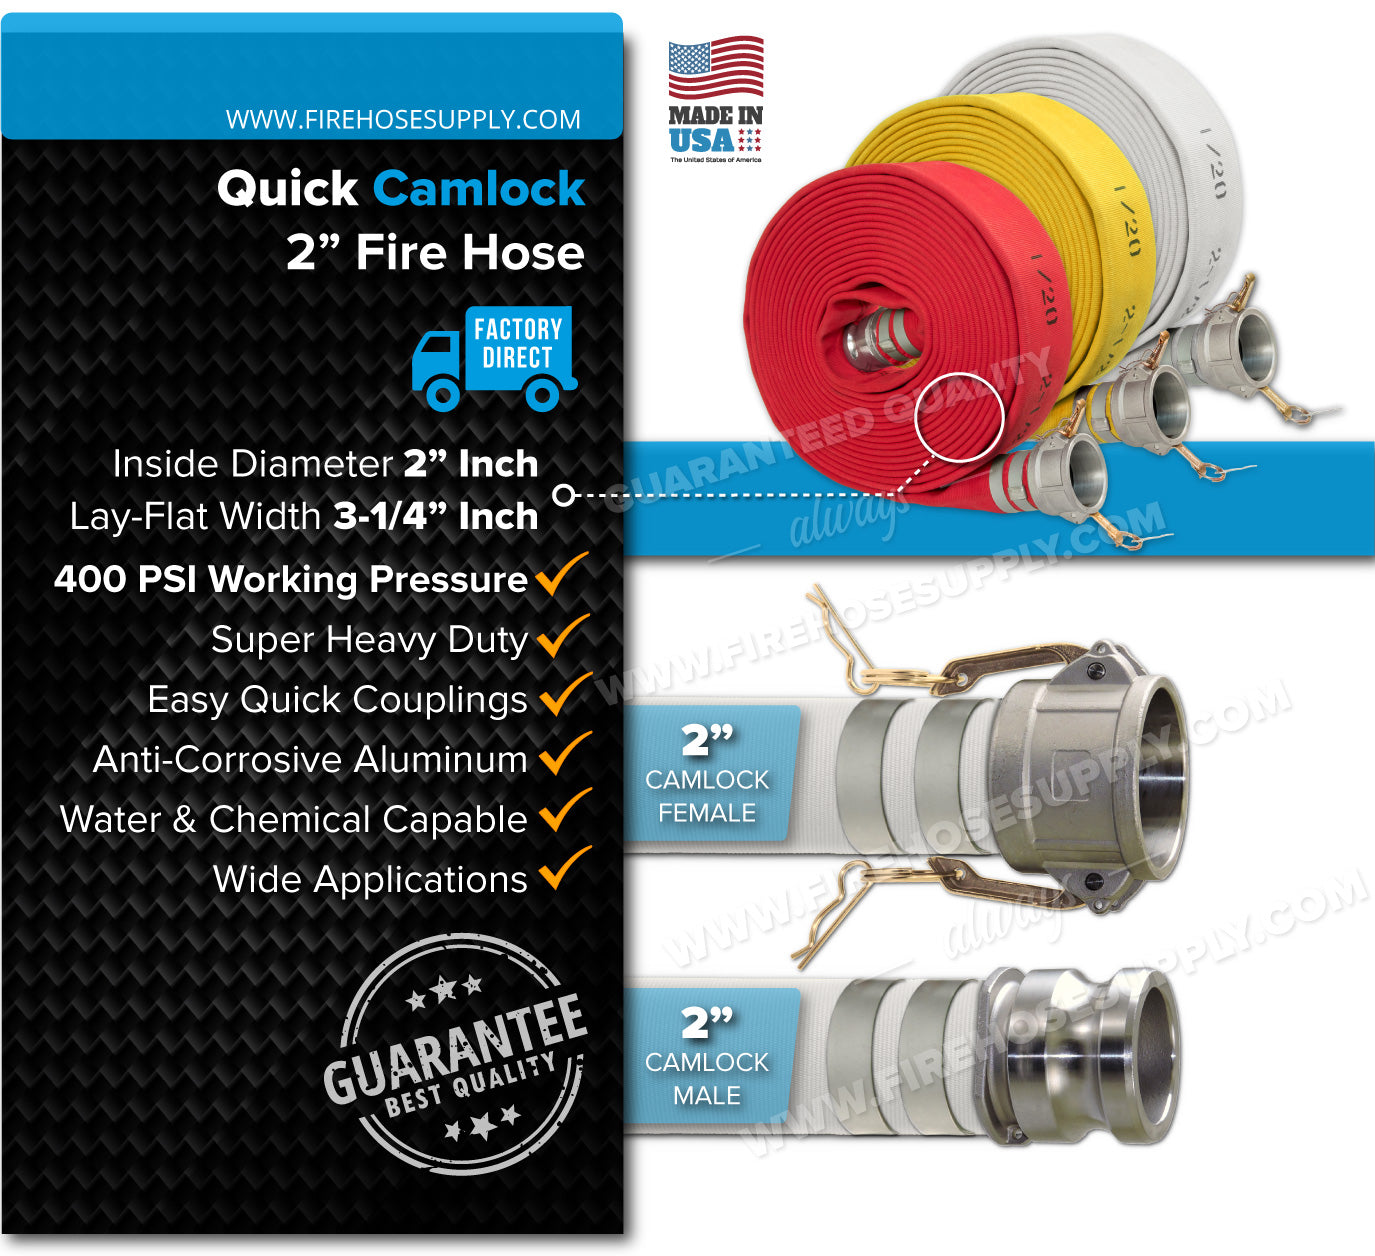 2 Inch Double Jacket Camlock Fire Hose Overview